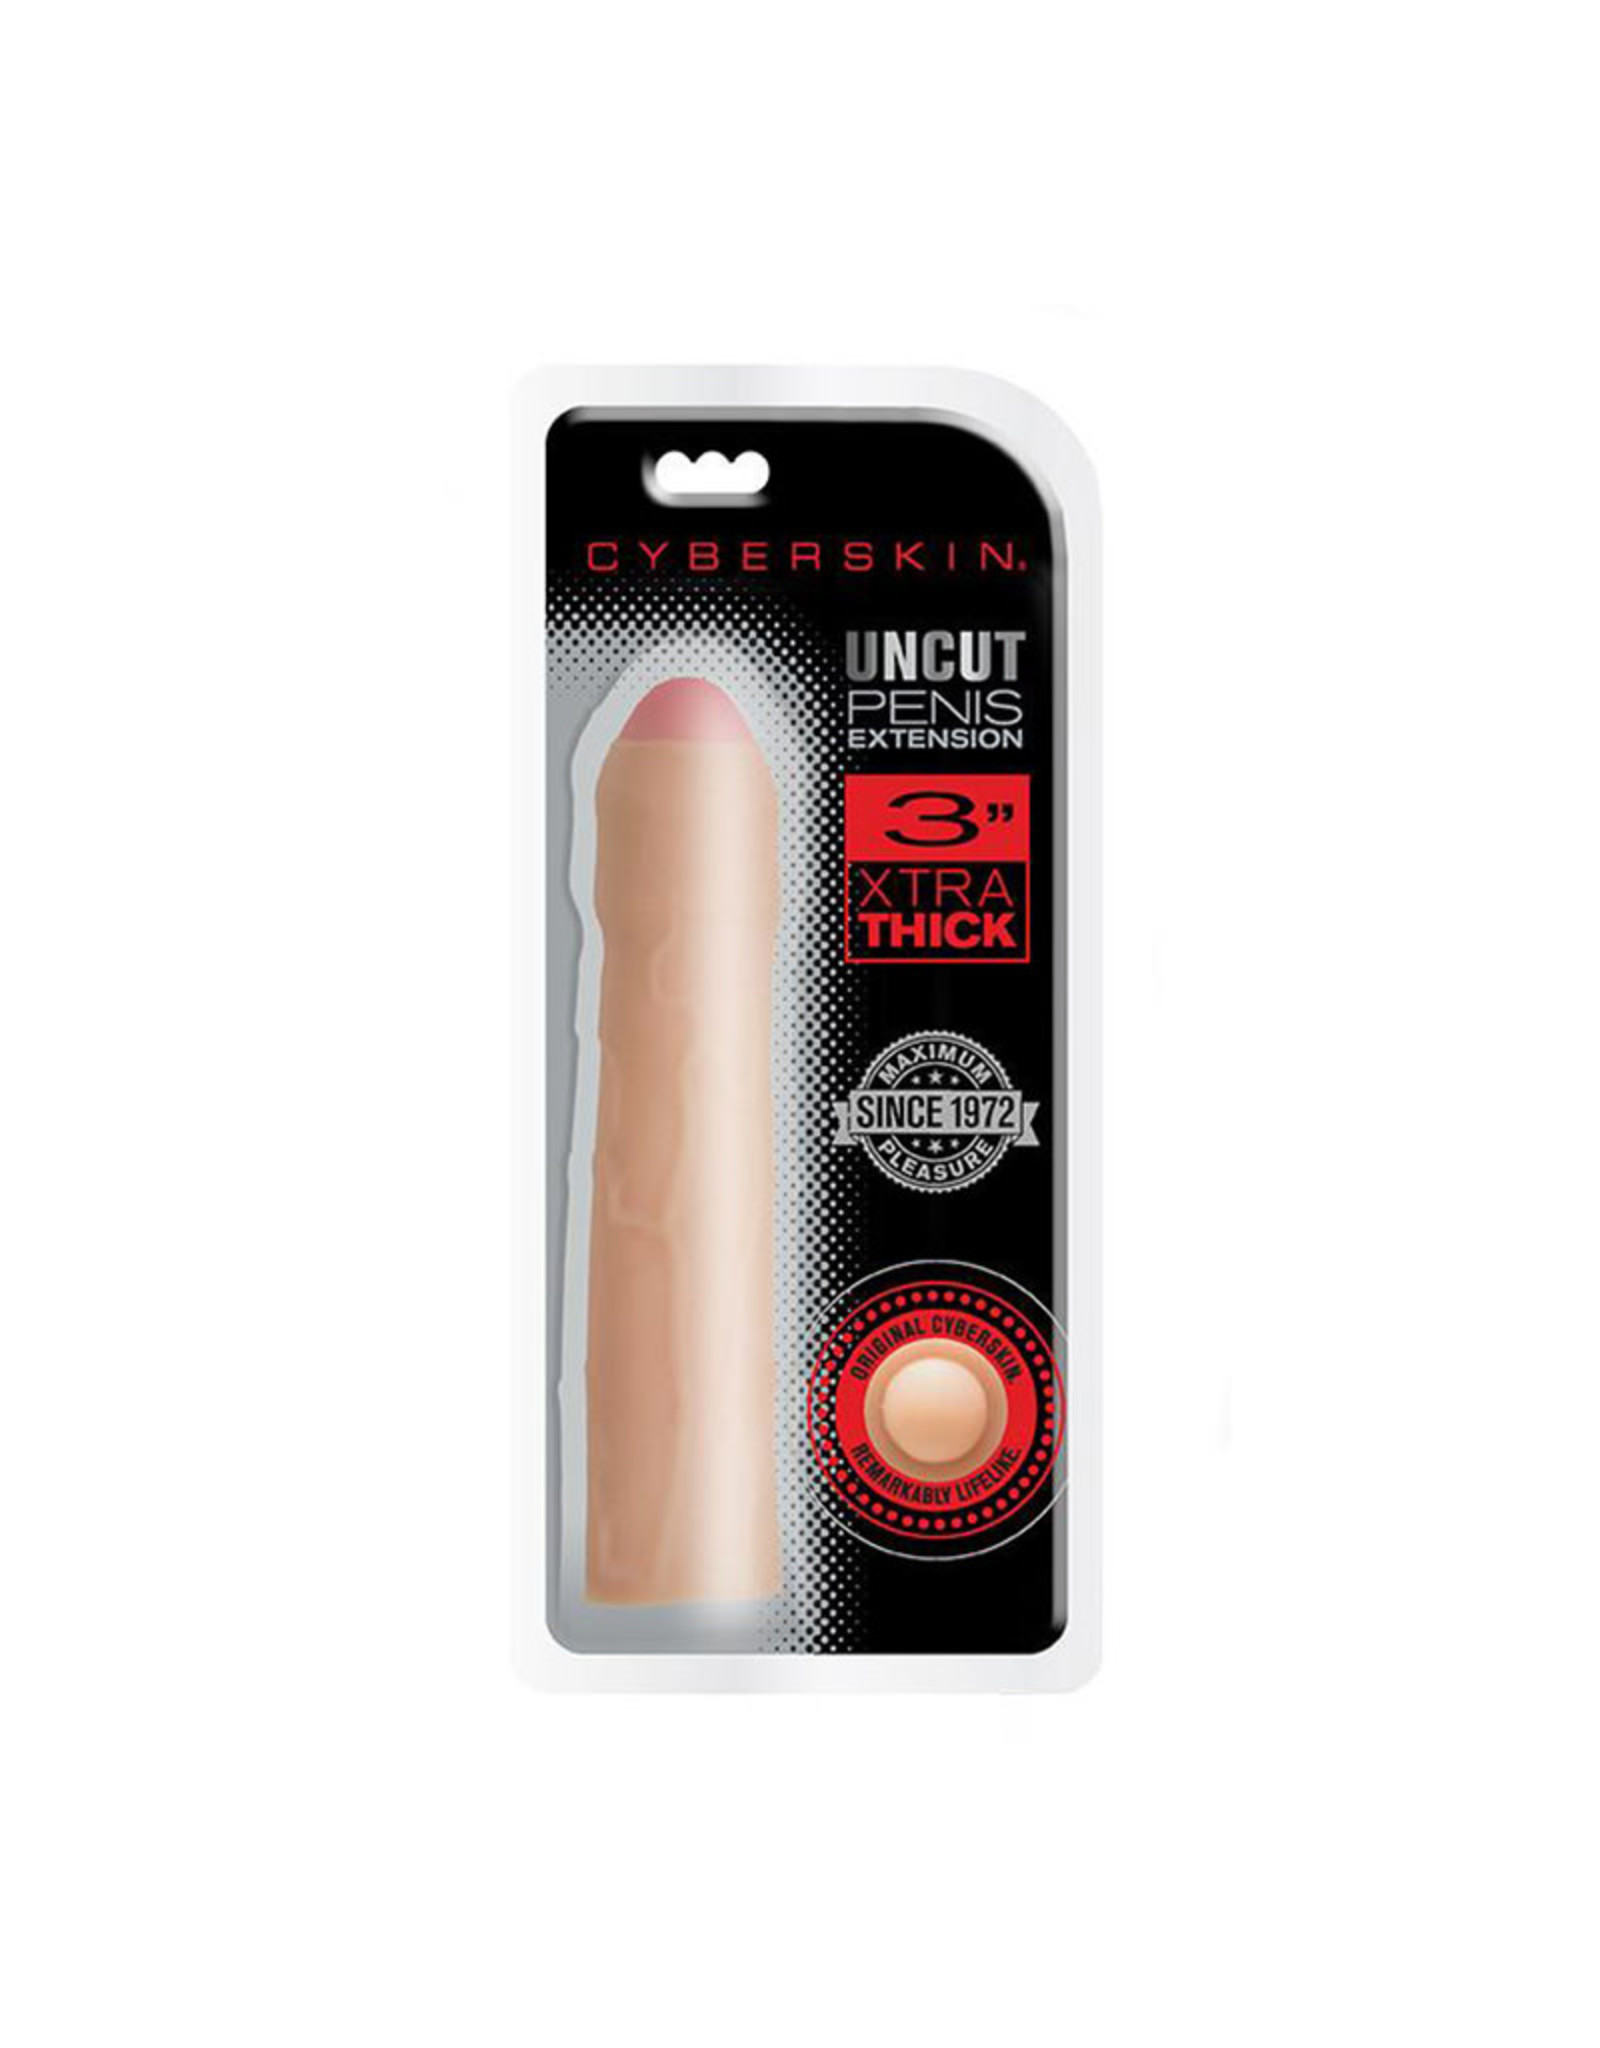 CYBERSKIN - UNCUT PENIS EXTENSION 3 INCHES - LIGHT